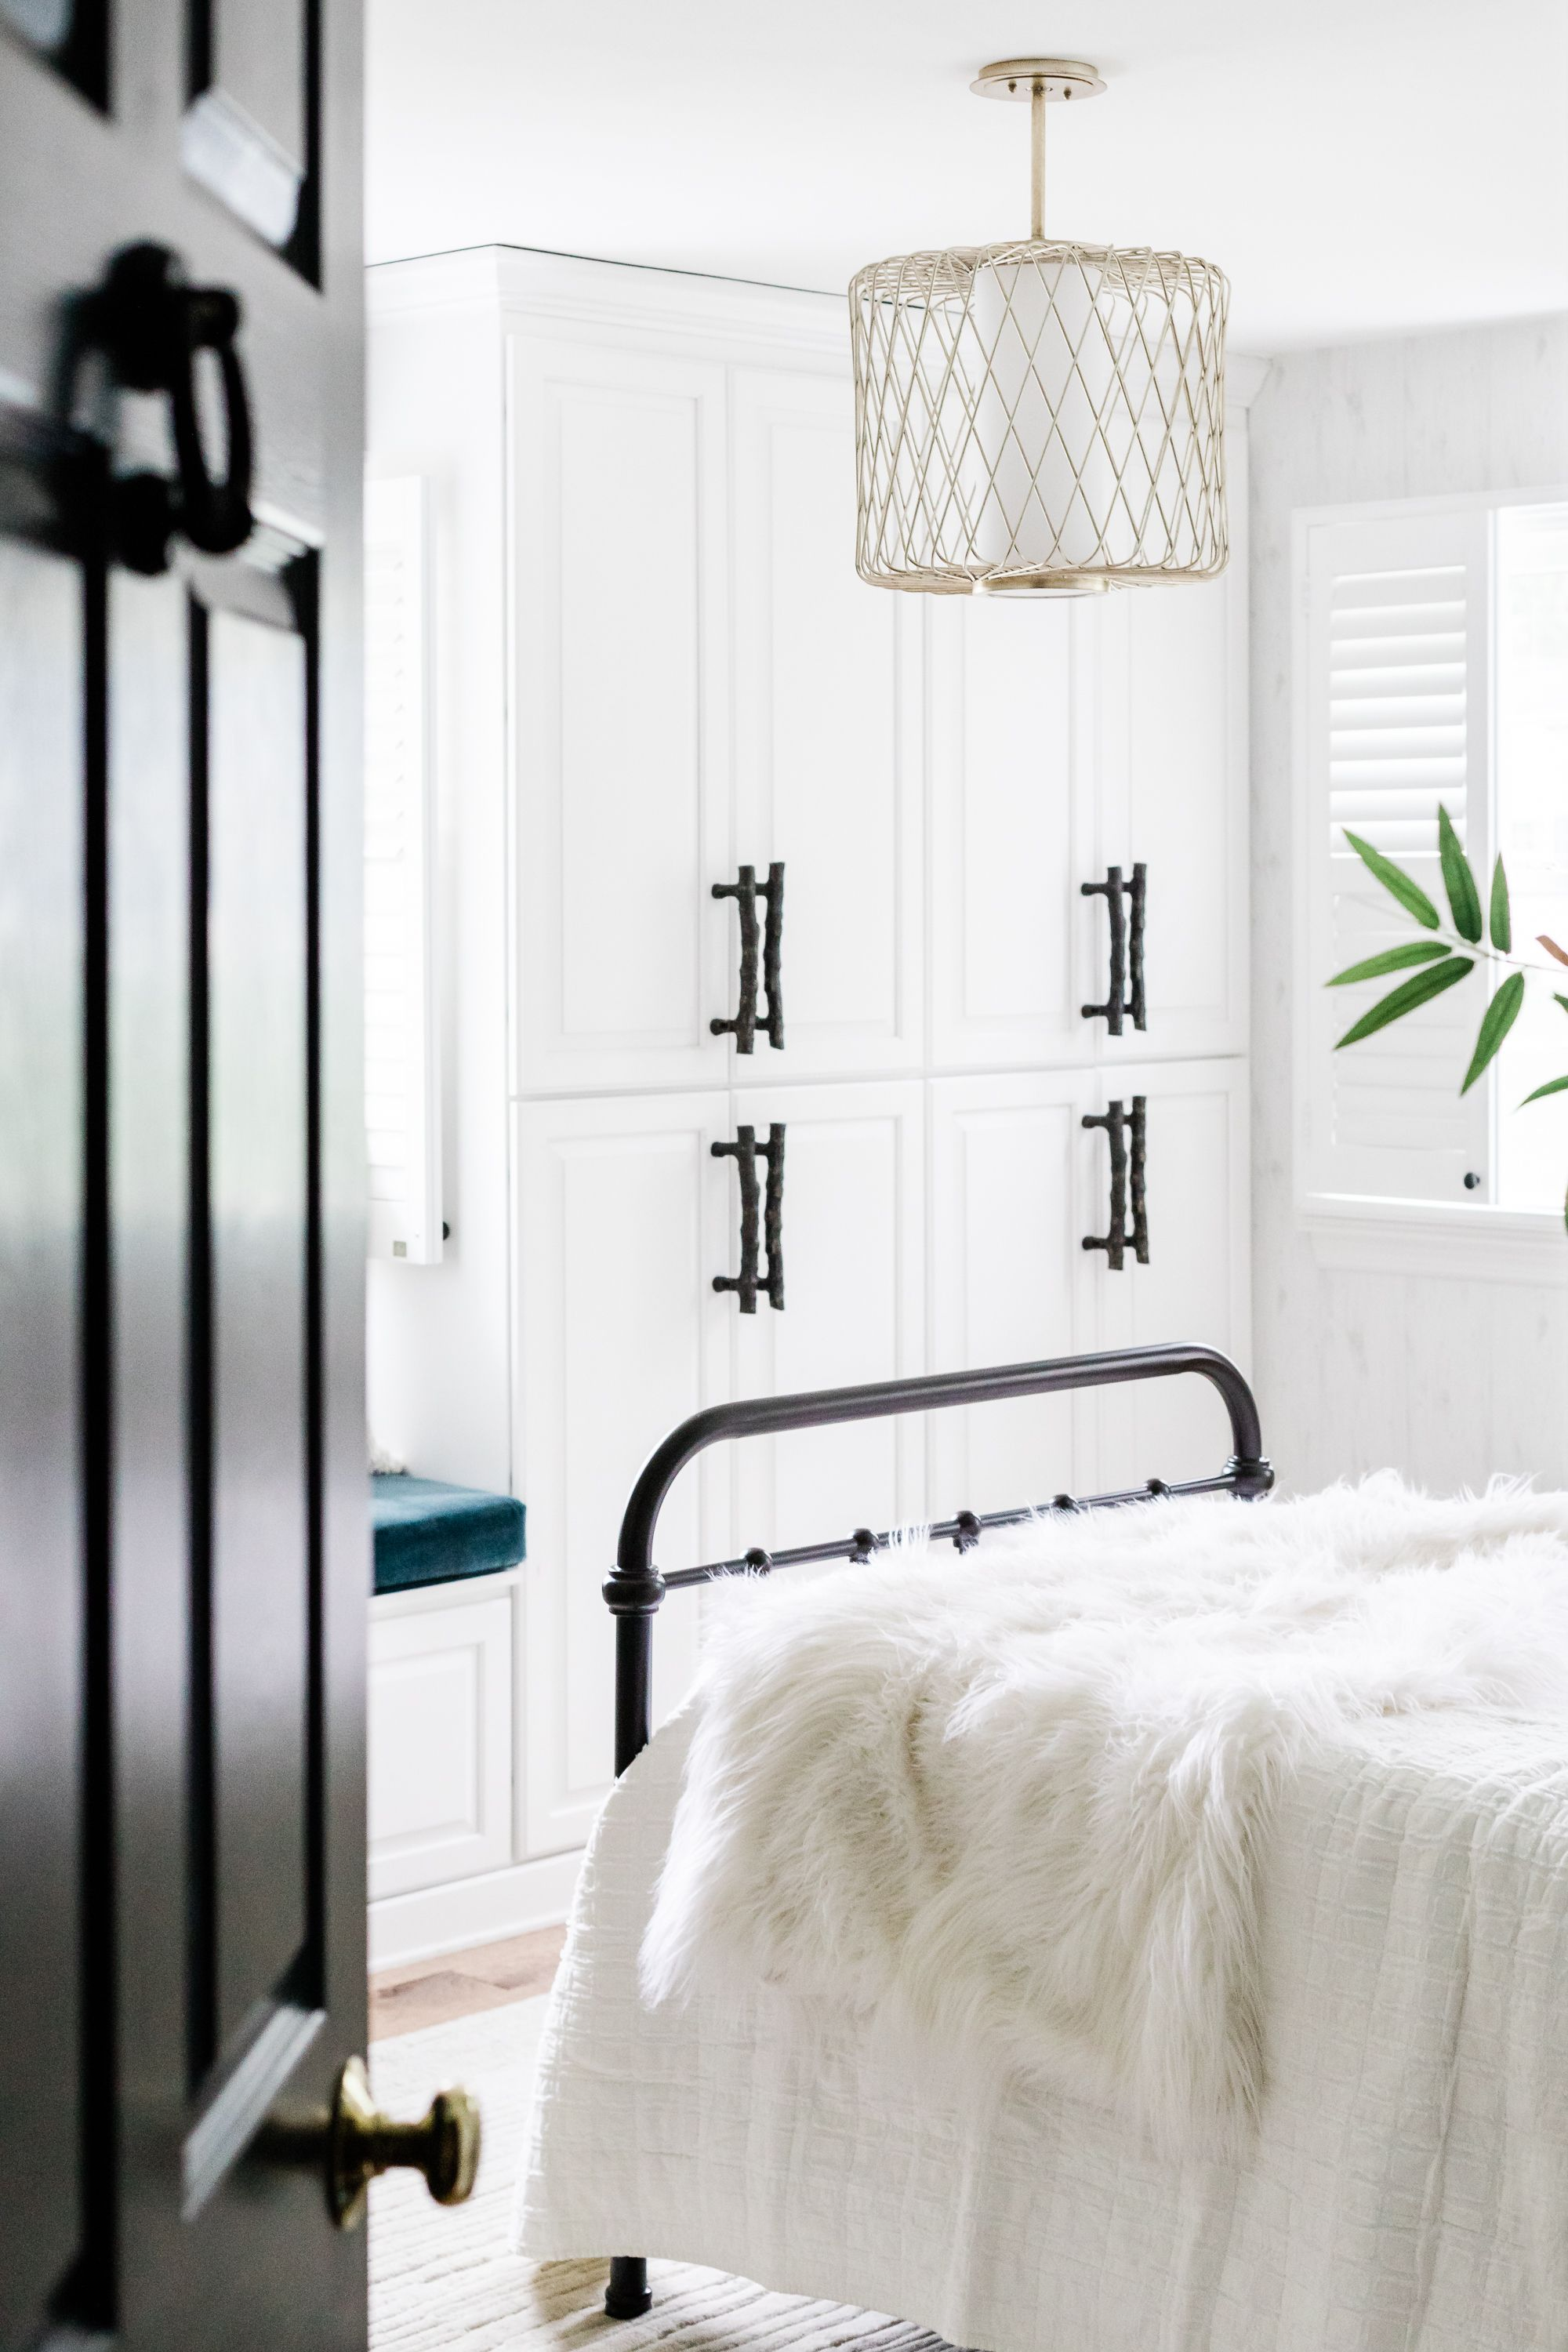 One Room Challenge Master Bedroom Week 6 The Reveal Diy Trim Feature Wall In 2020 Feature Wall Bedroom Master Bedroom Accents Master Bedrooms Decor